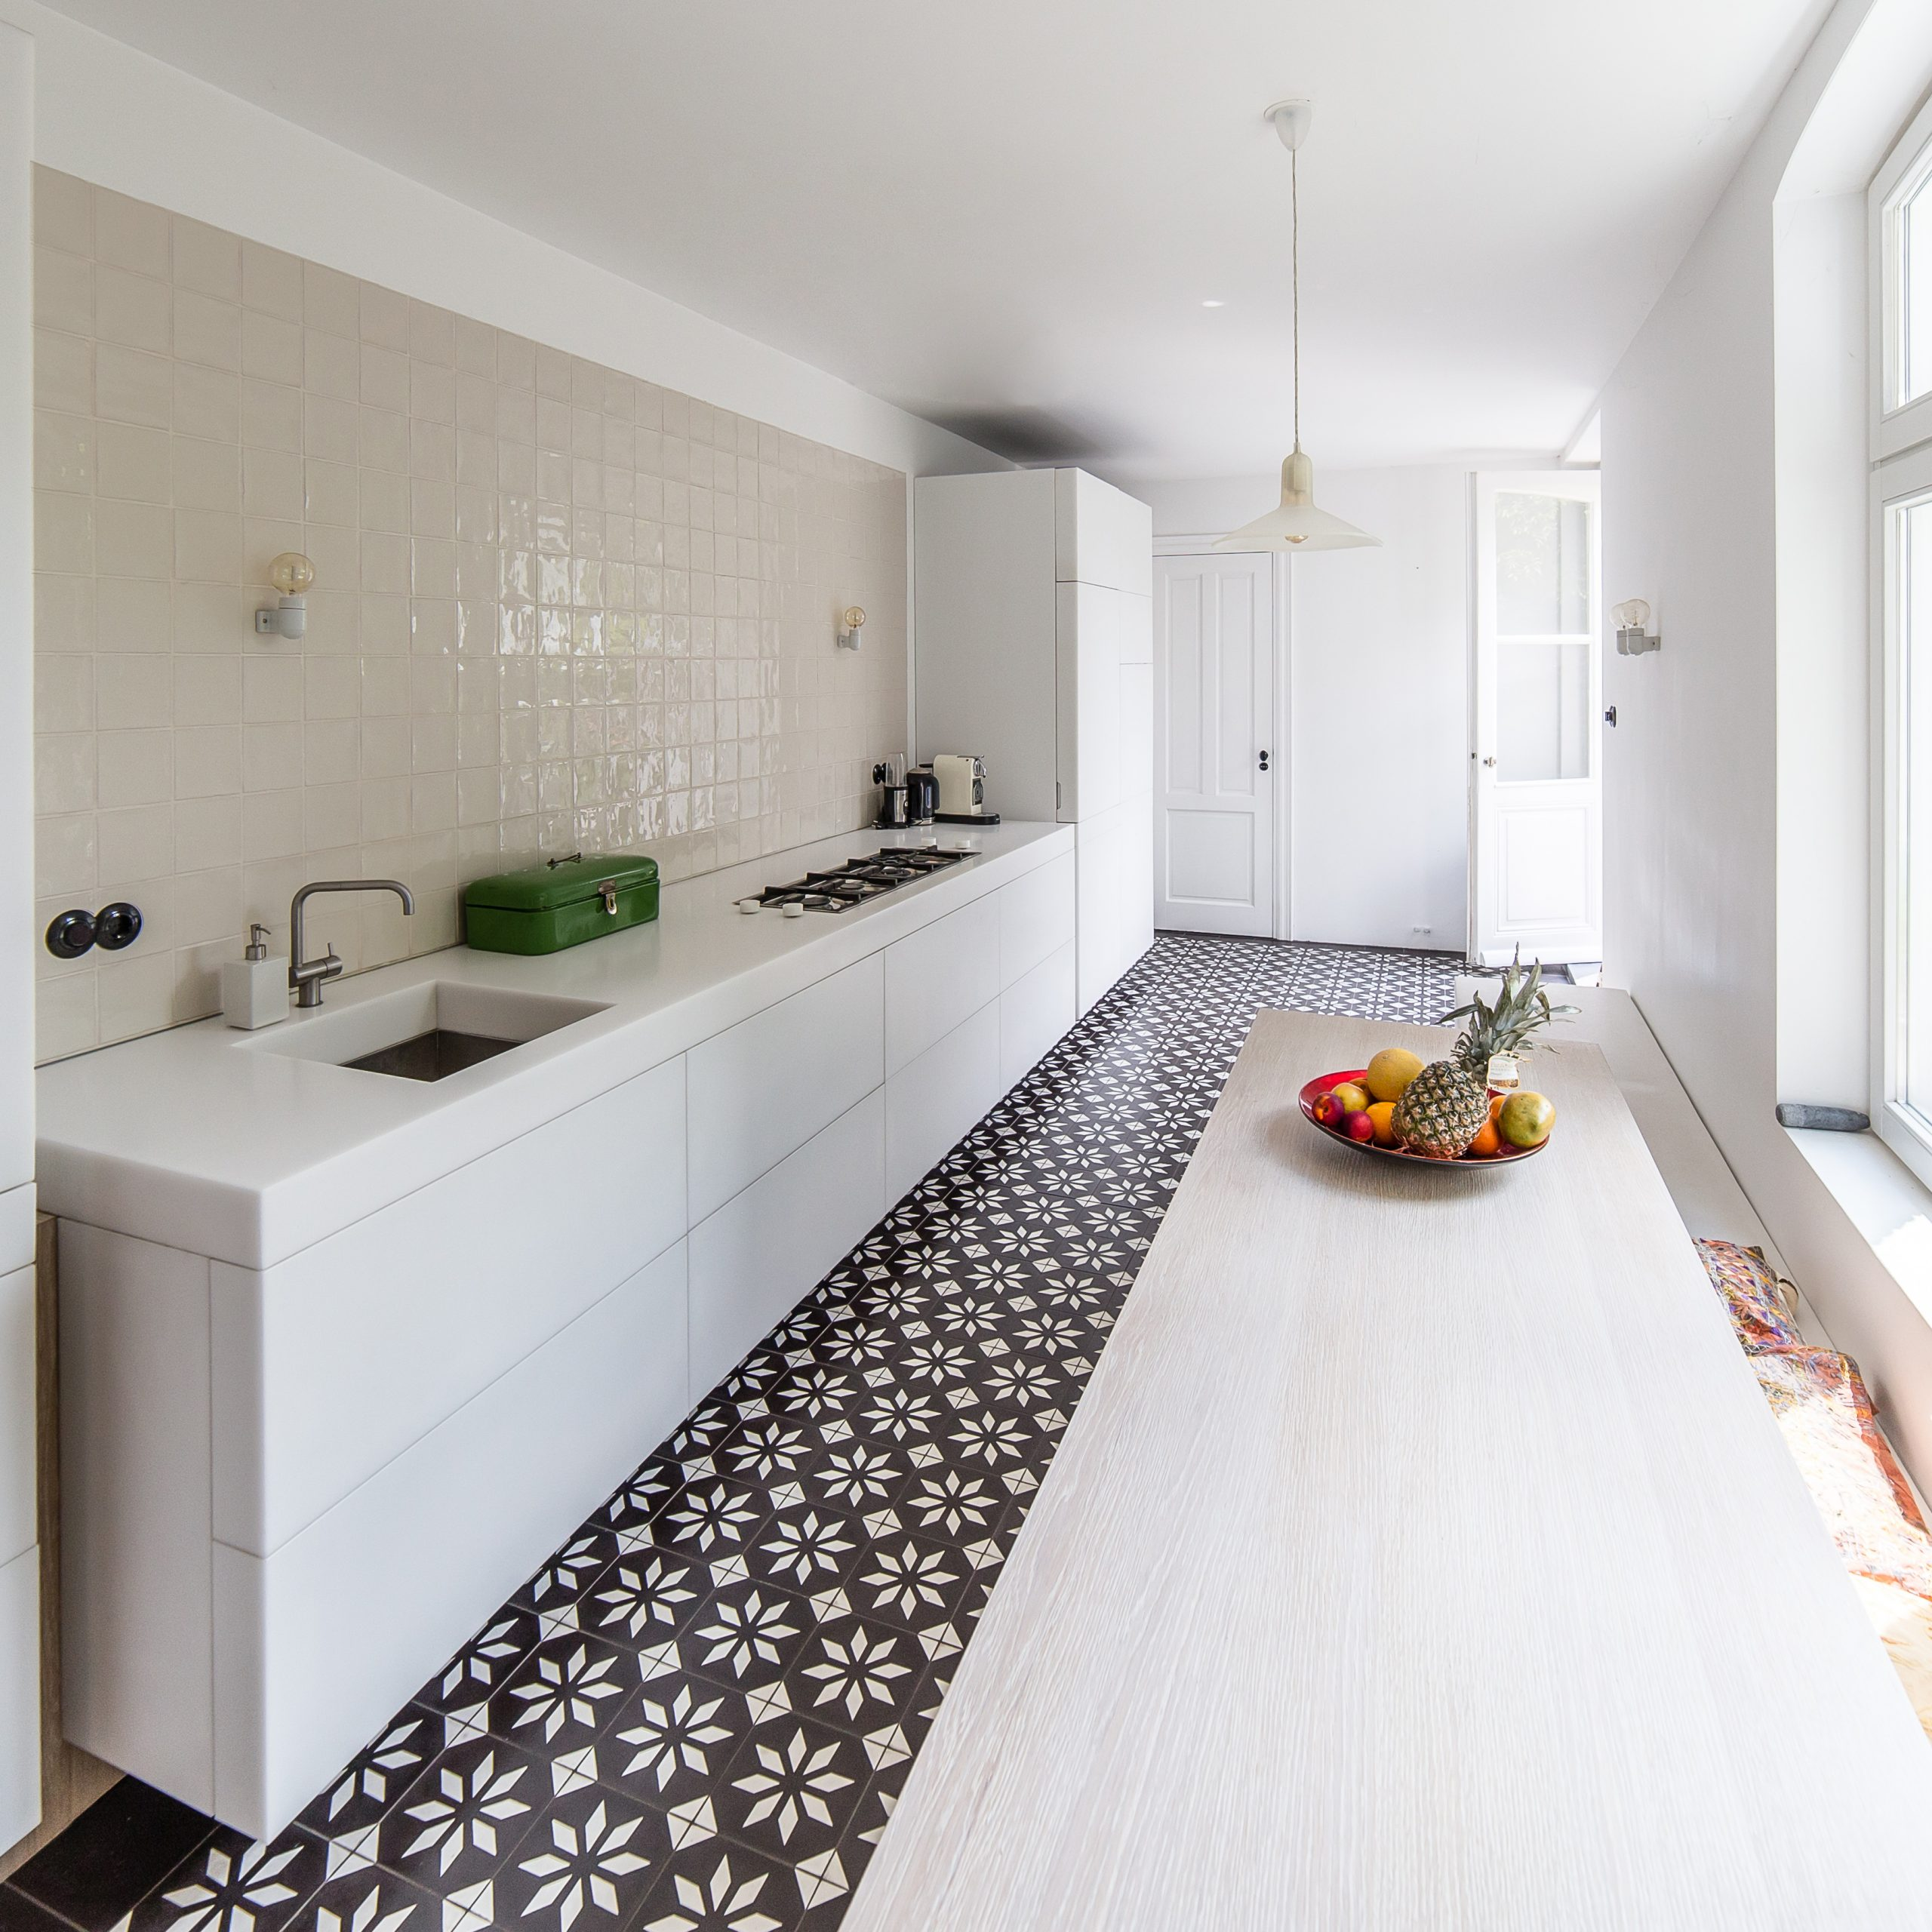 Kitchen design with pattern tiles